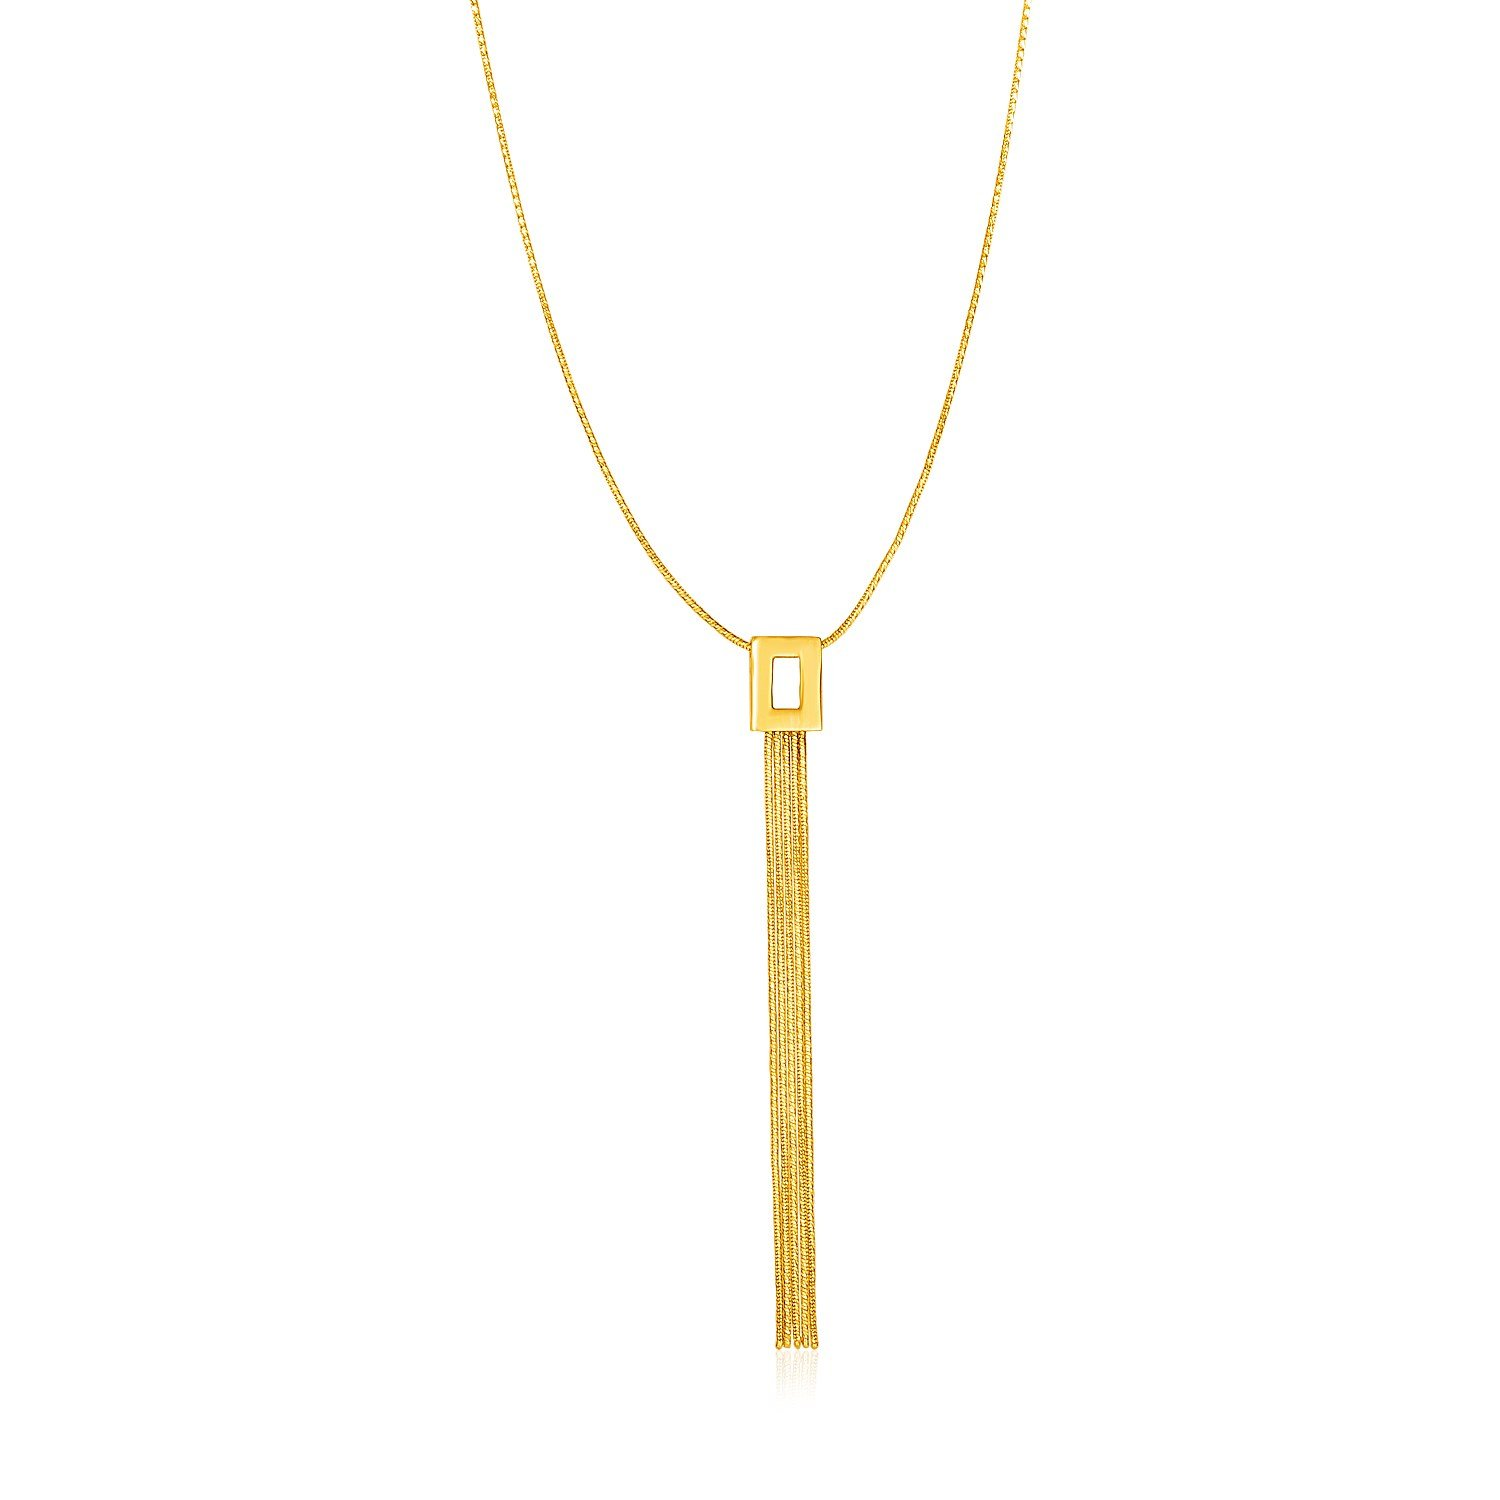 14K Yellow Gold Lariat Style Necklace by Jewels By Lux